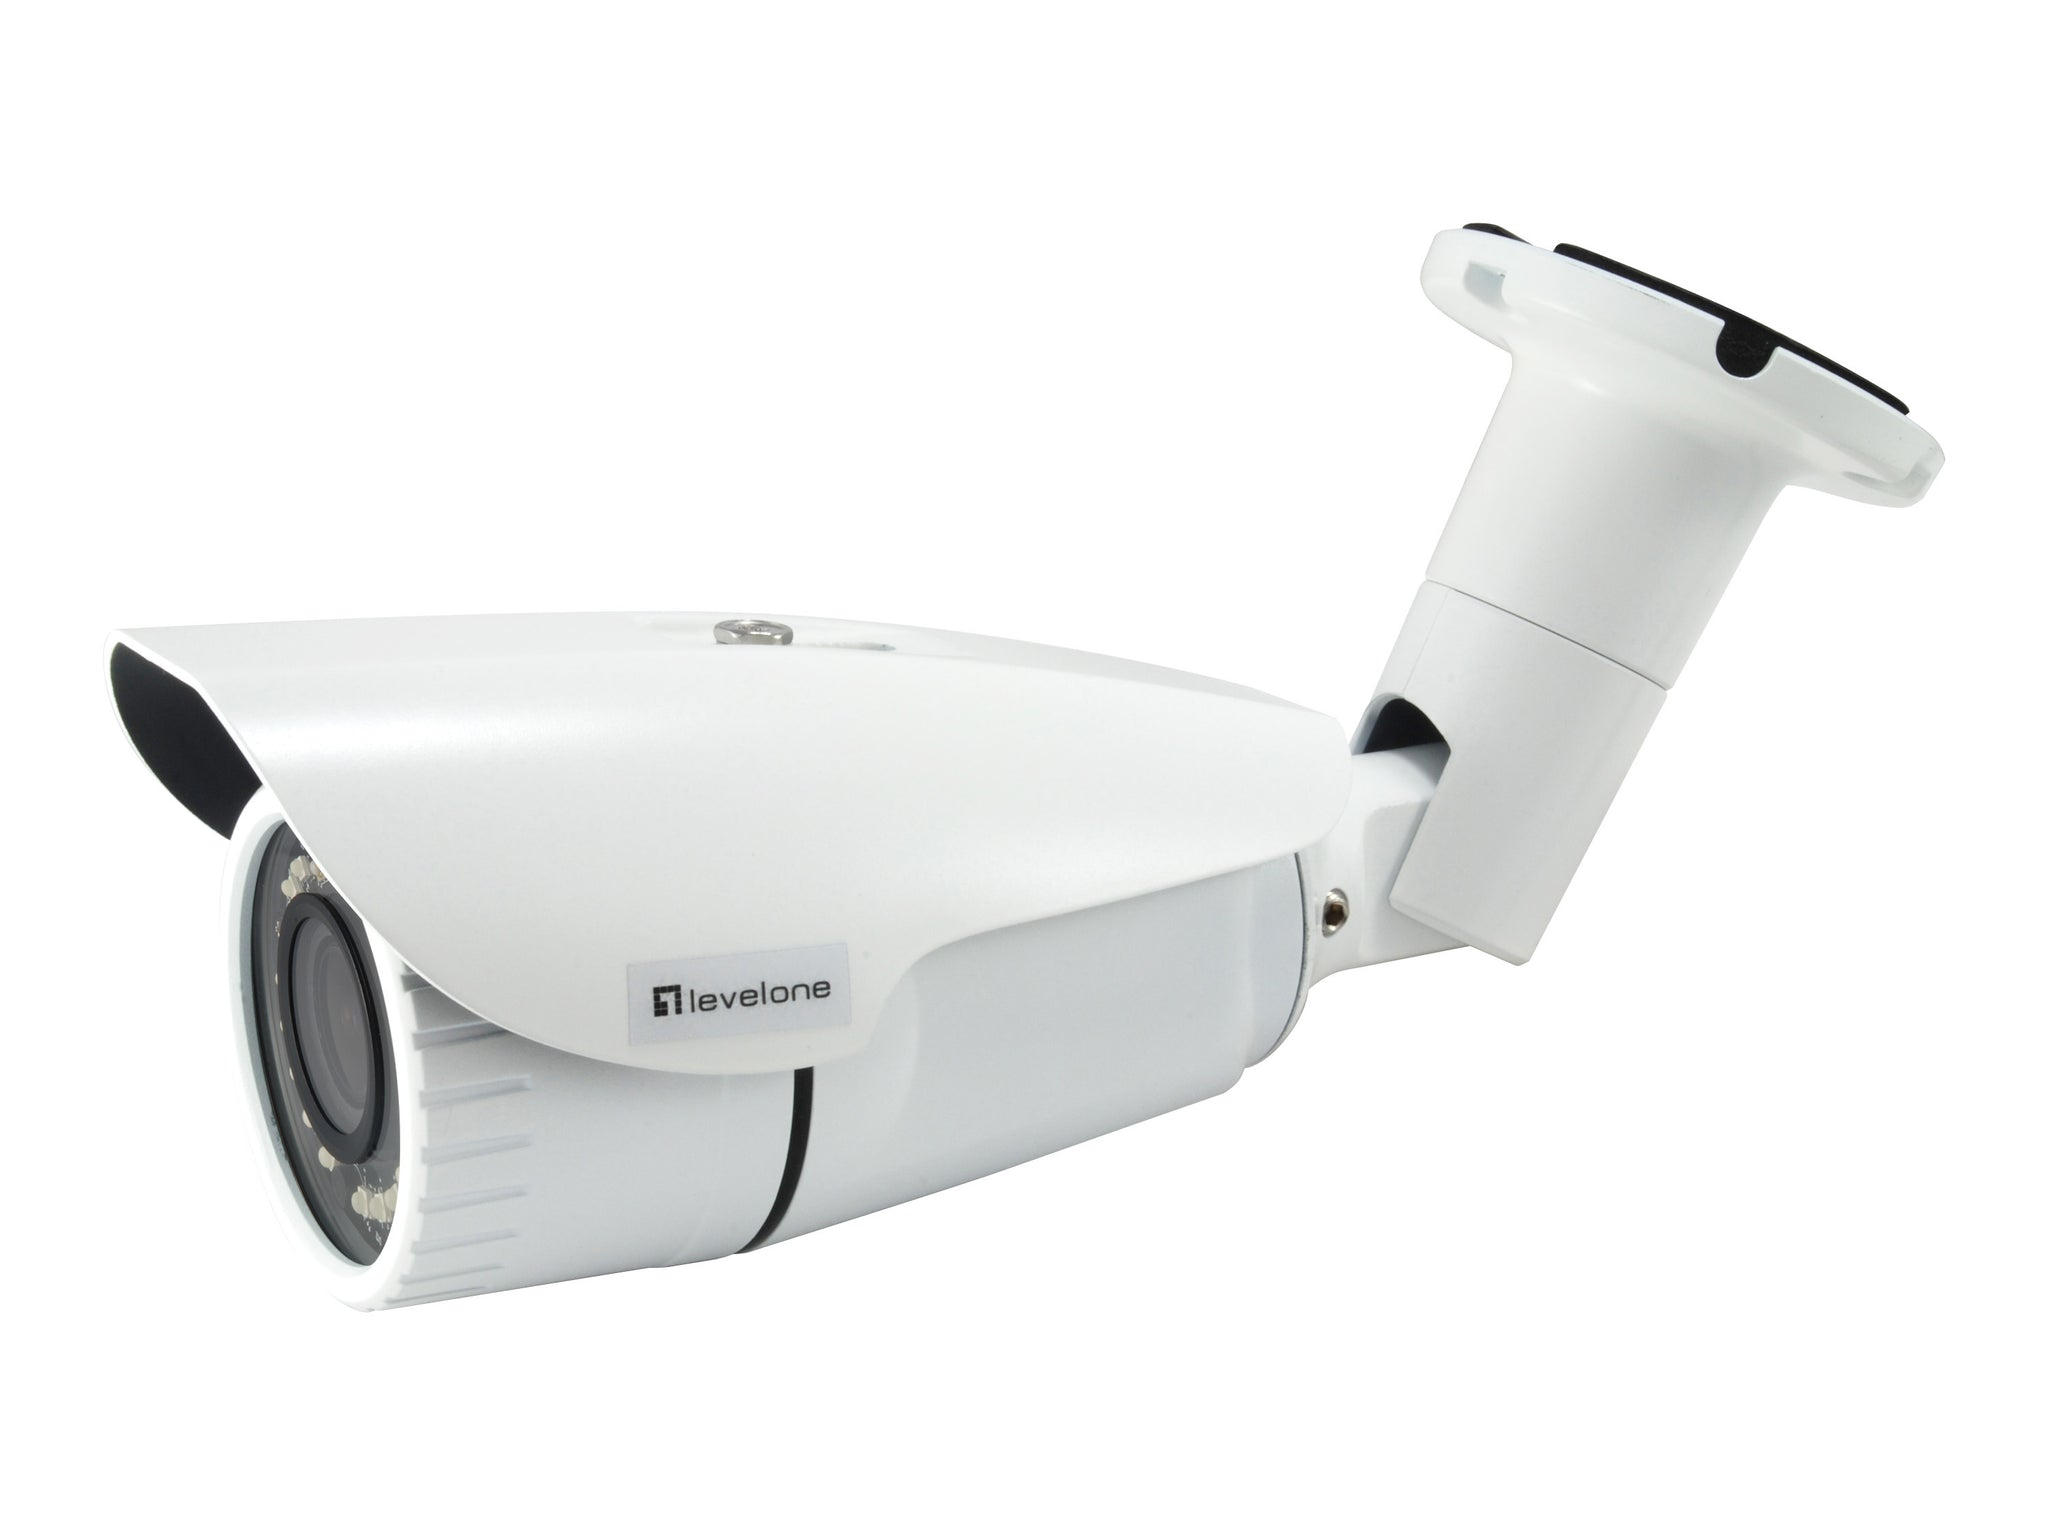 FCS-5103 Fixed IP, 3MP, H.265/264, 2.8X Optical Zoom, 802.3af PoE, IR LEDs, Indoor/Outdoor, Vandalproof